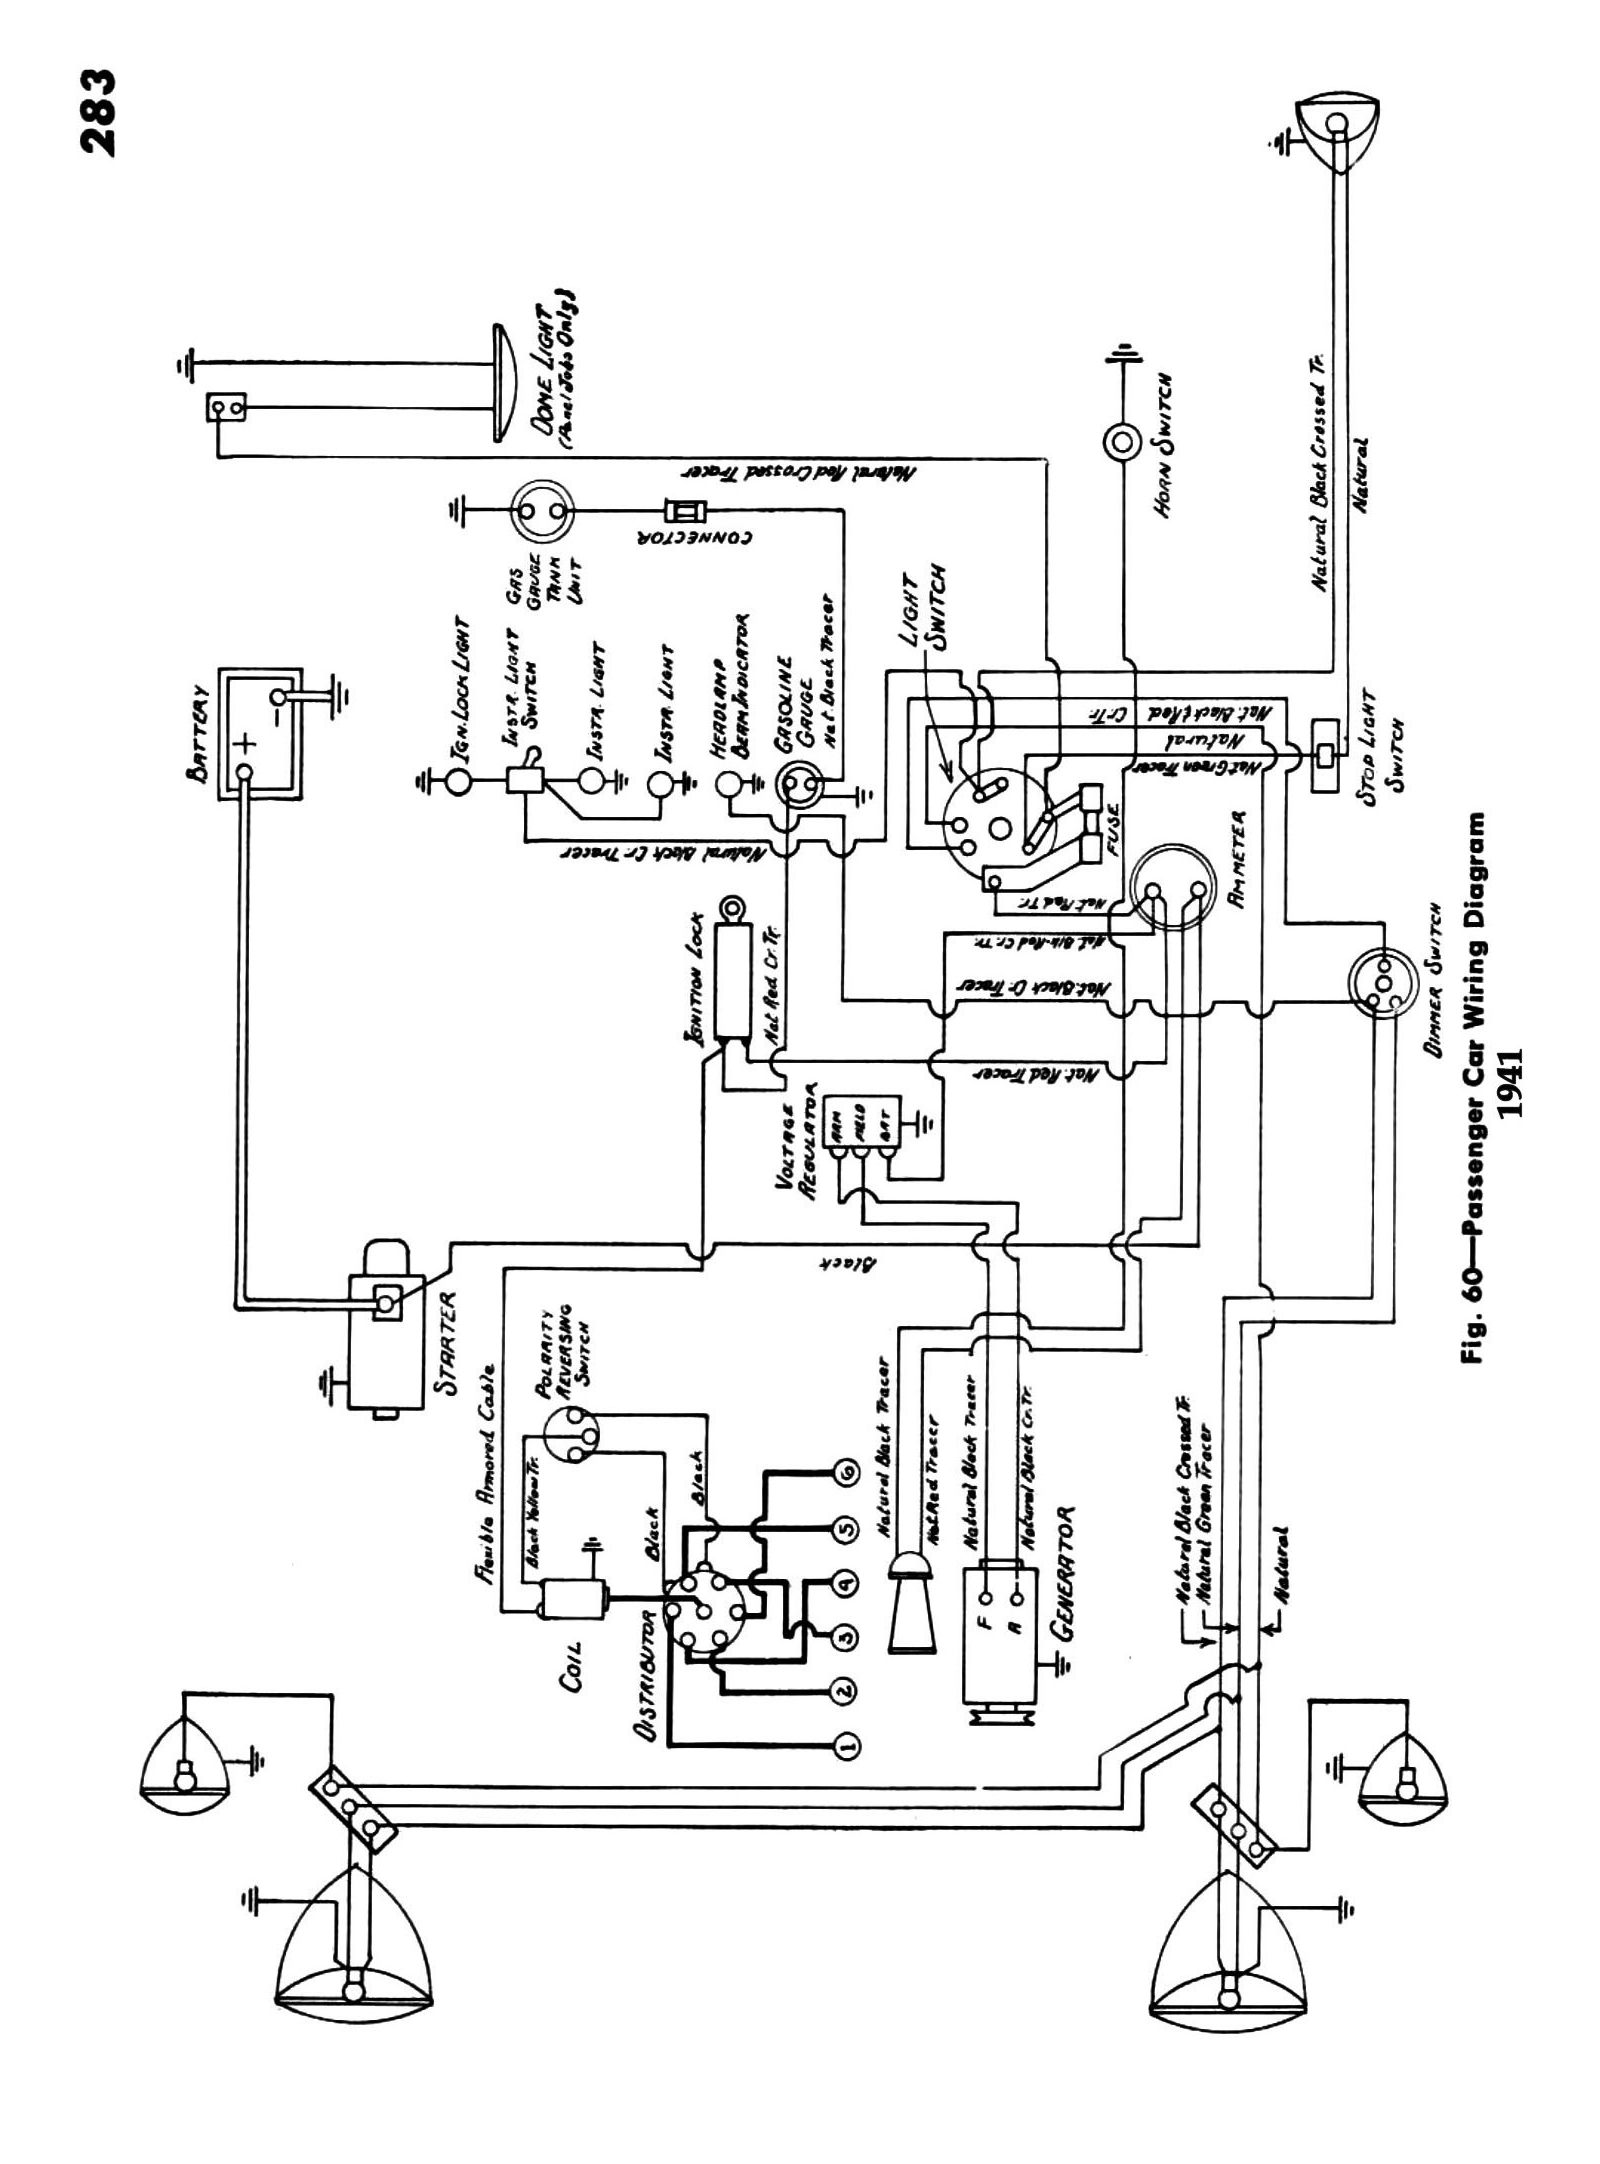 1953 Ford Car Turn Signal Wiring Diagram Reveolution Of 1969 Chevy Truck Diagrams Grote Universal Switch